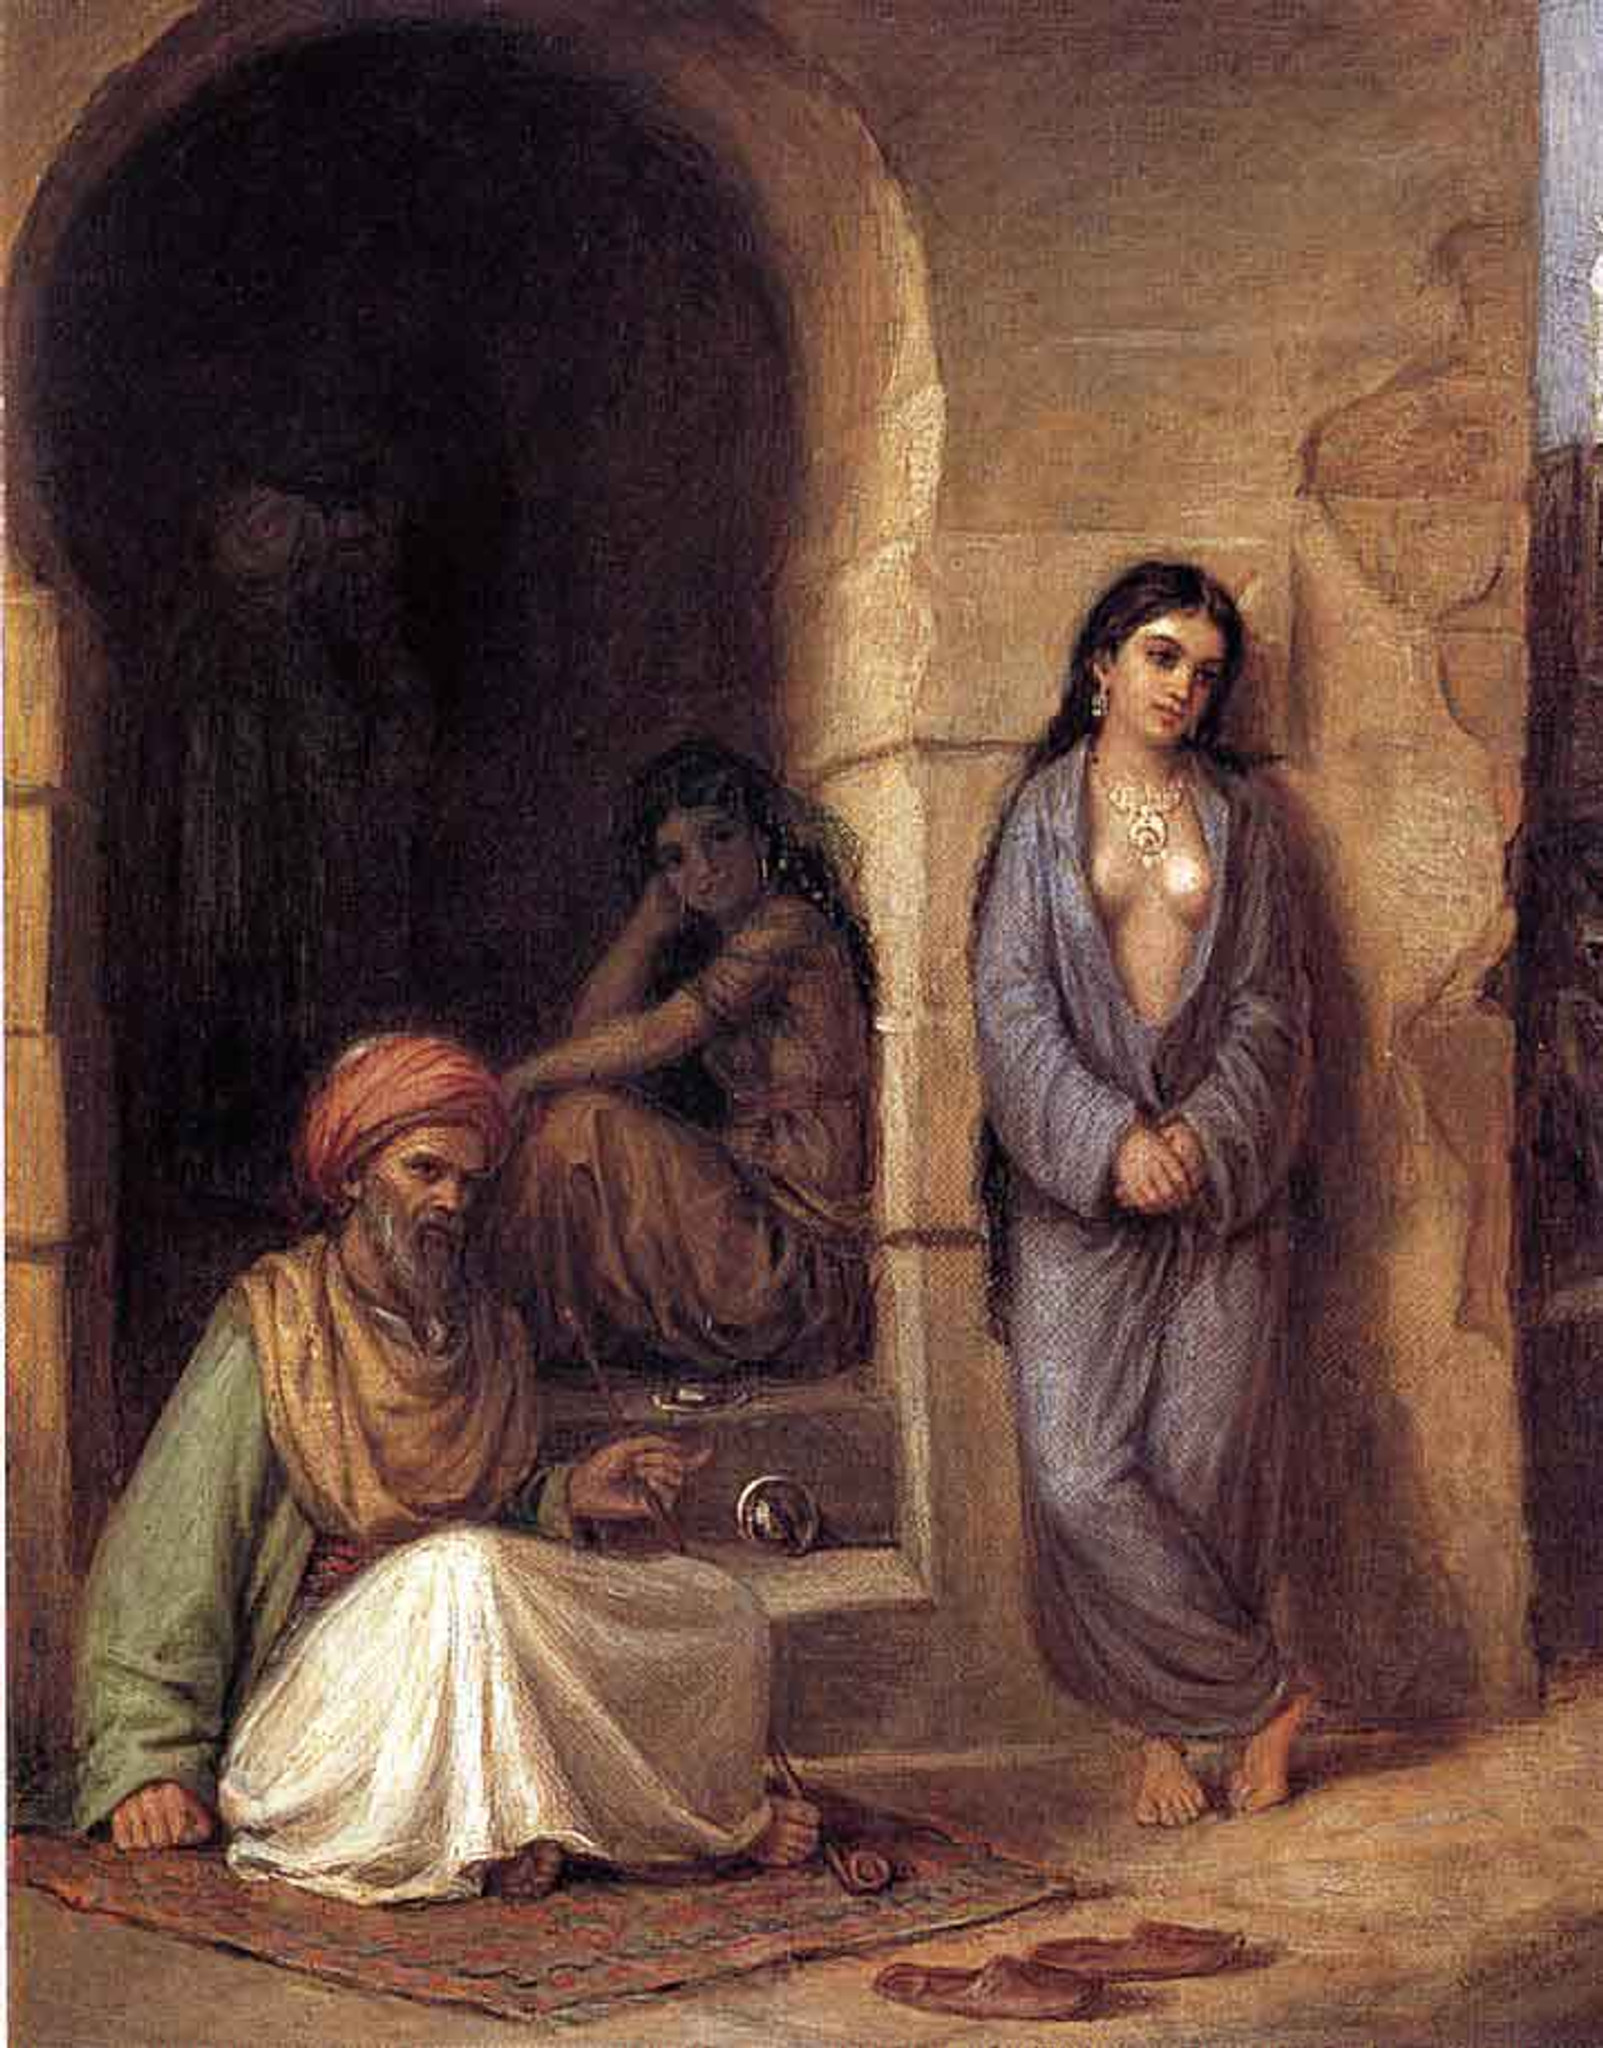 The Slave By John William Waterhouse Art Reproduction from Cutler Miles.